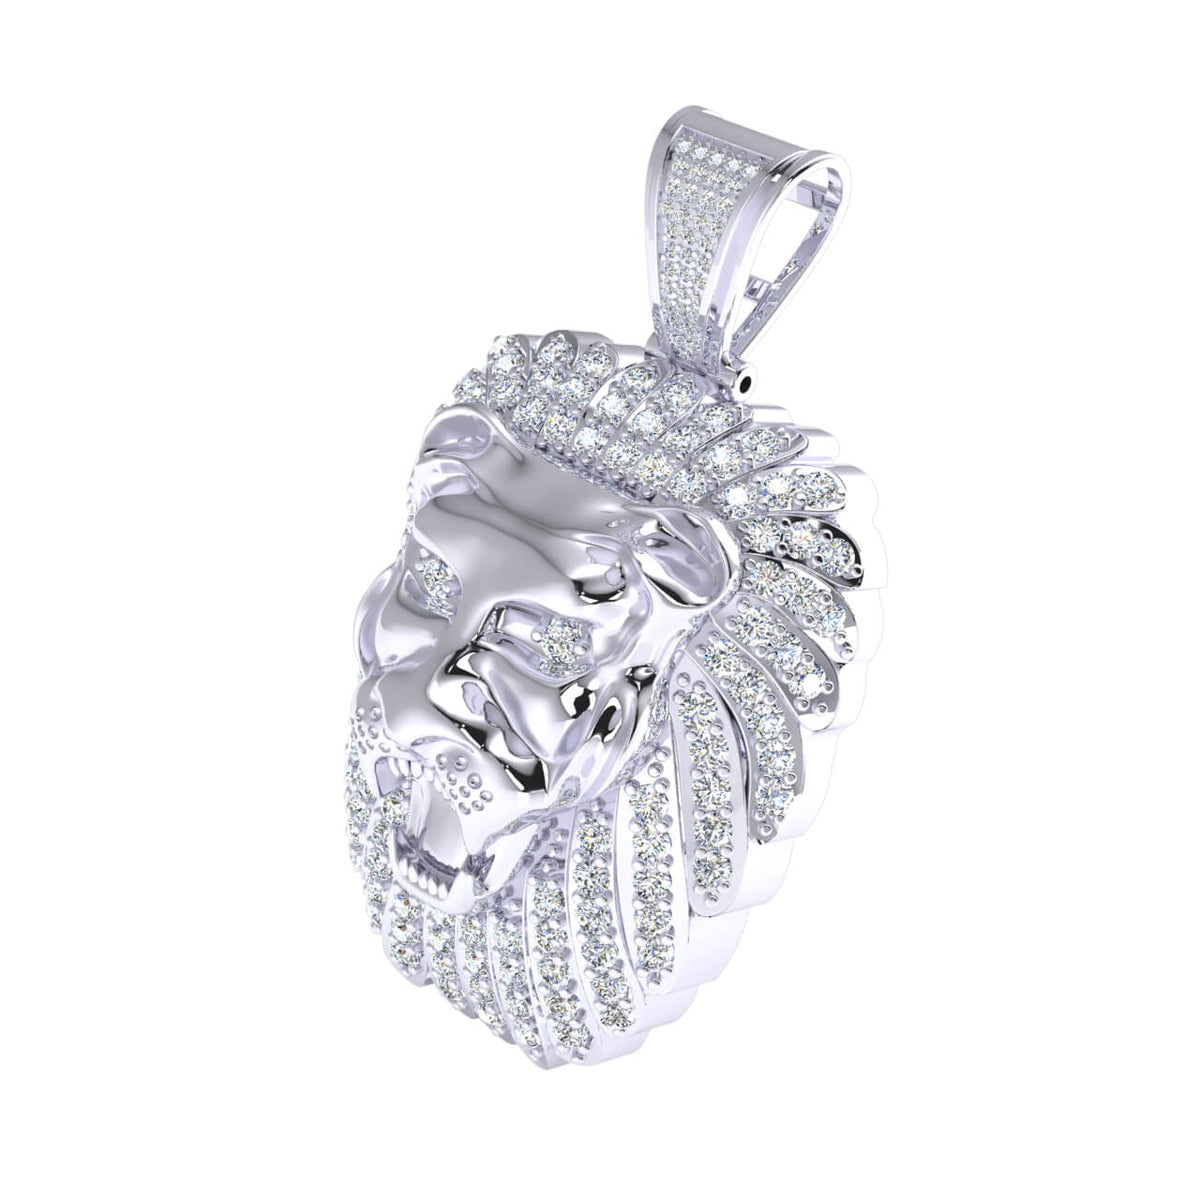 3.75 Ct Hip Hop Charm Pendant For Adults Round GH SI1 Diamond 10k Gold